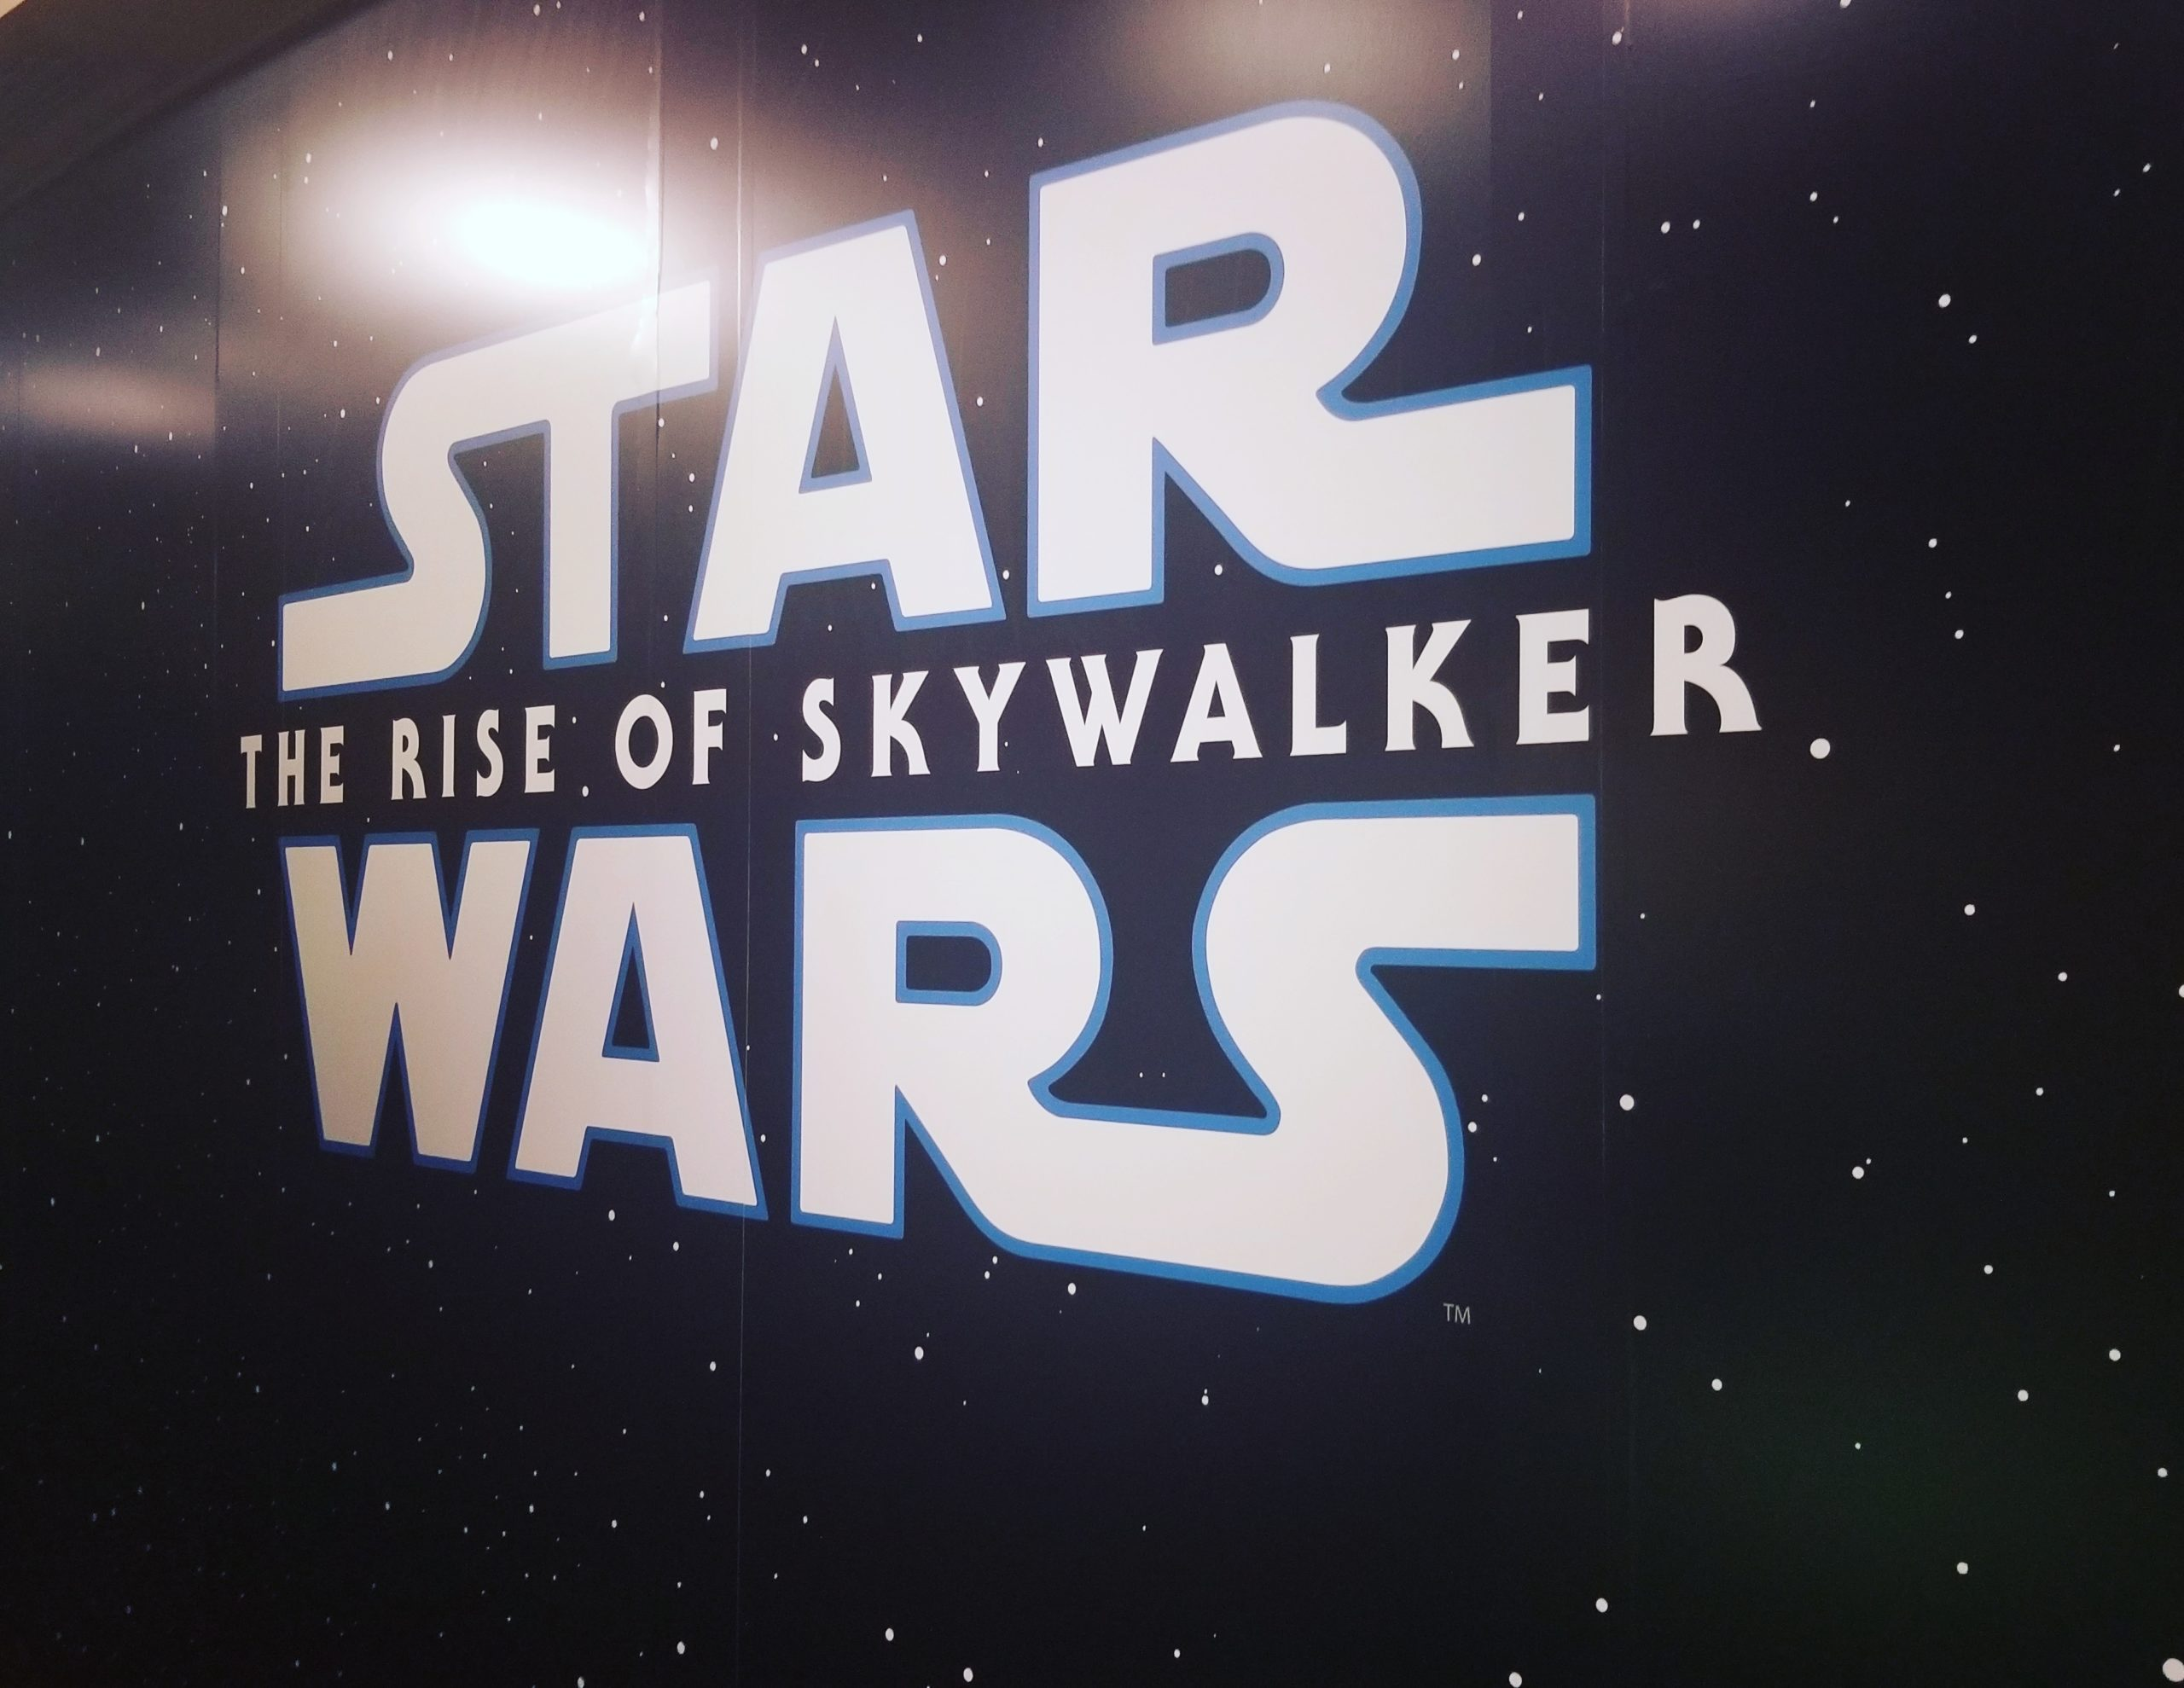 Review Star Wars The Rise Of Skywalker 2019 Lucasfilm Disney Pictures